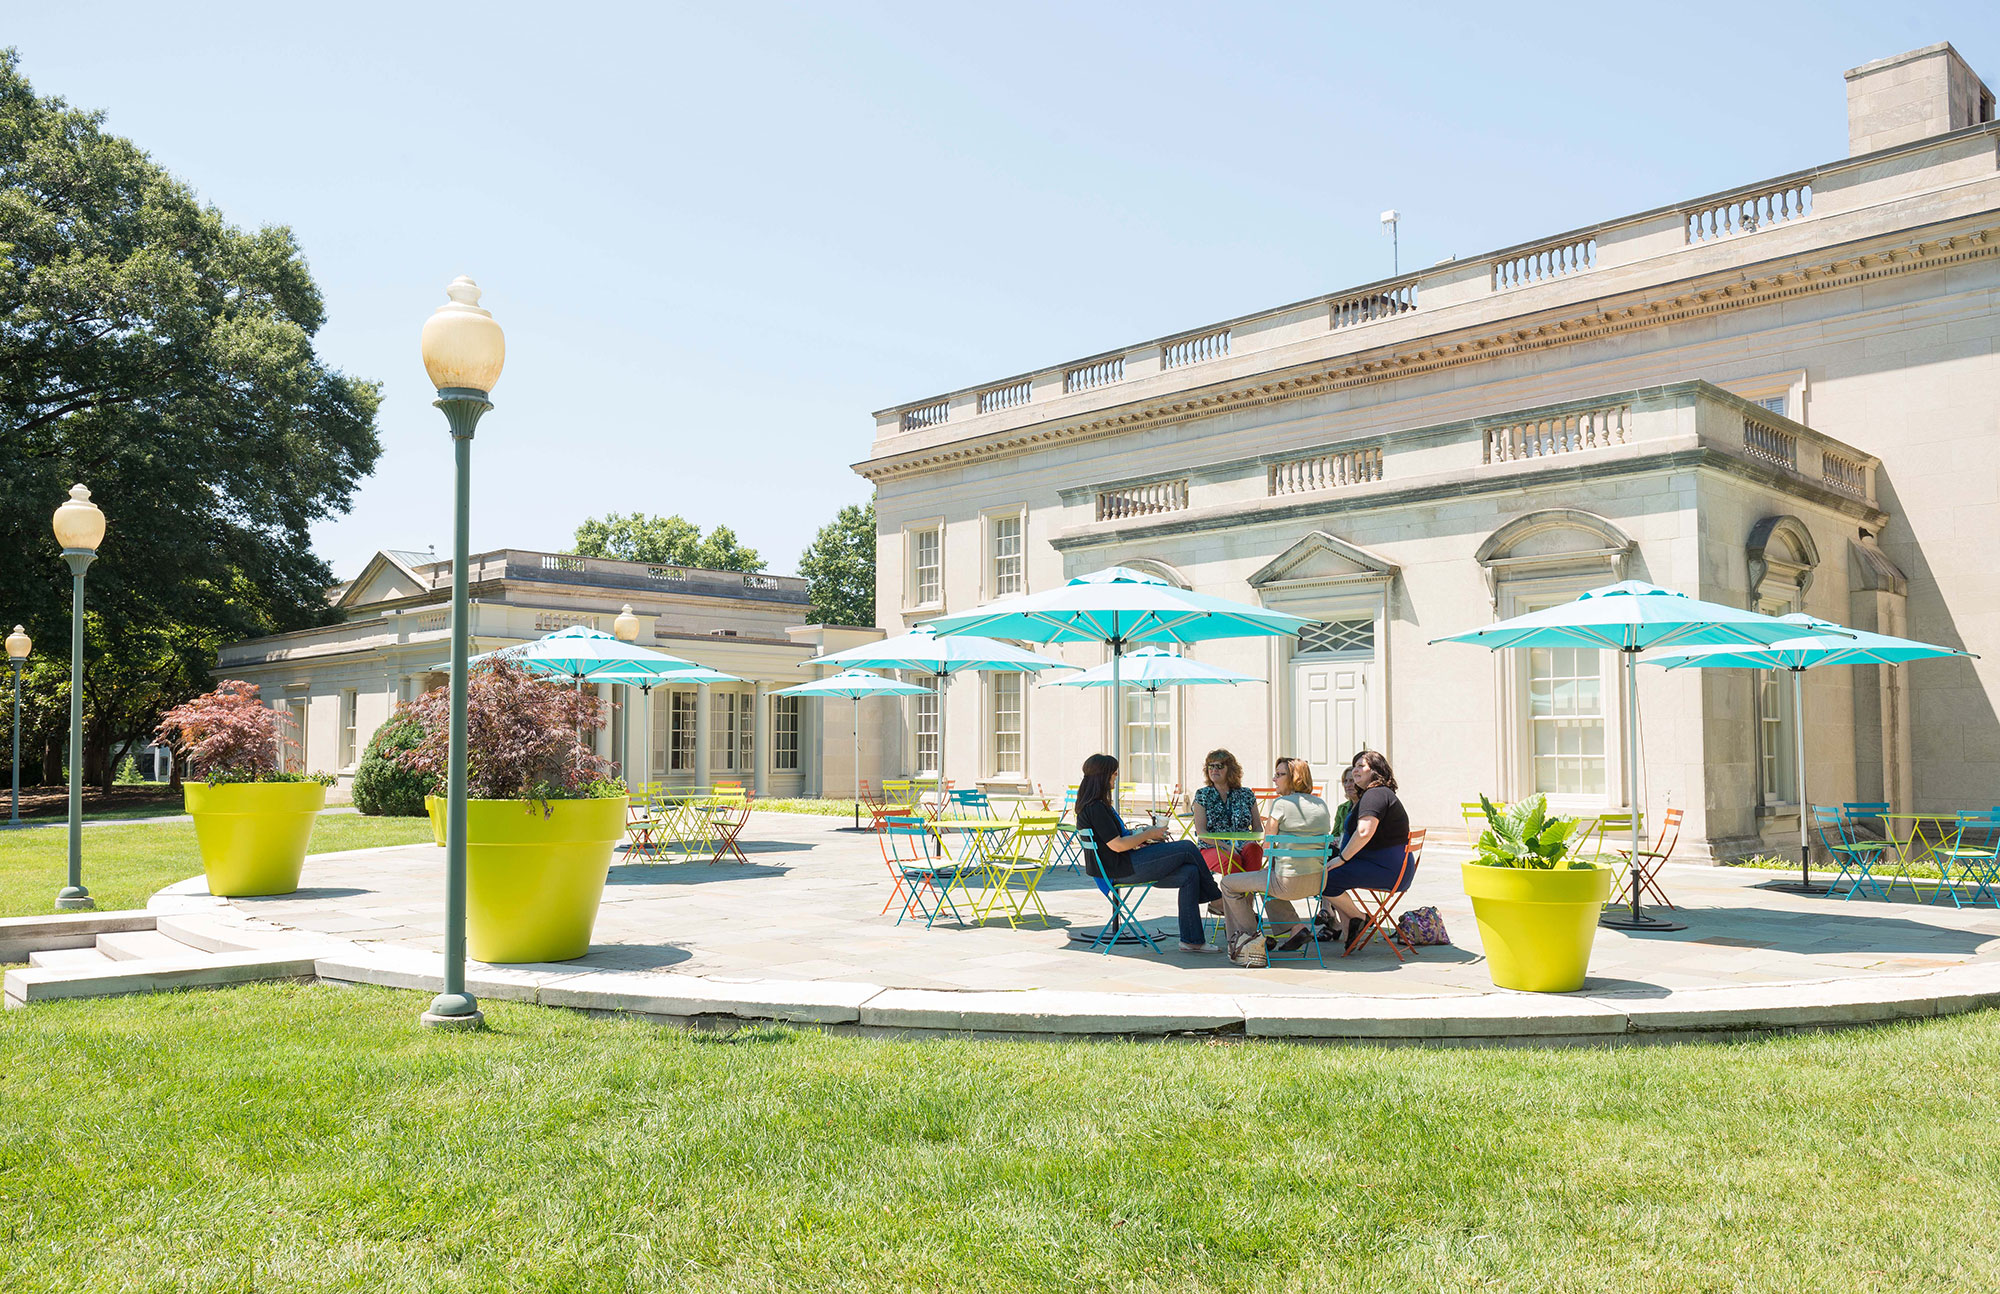 Placemaking at the Virginia Museum of Fine Arts